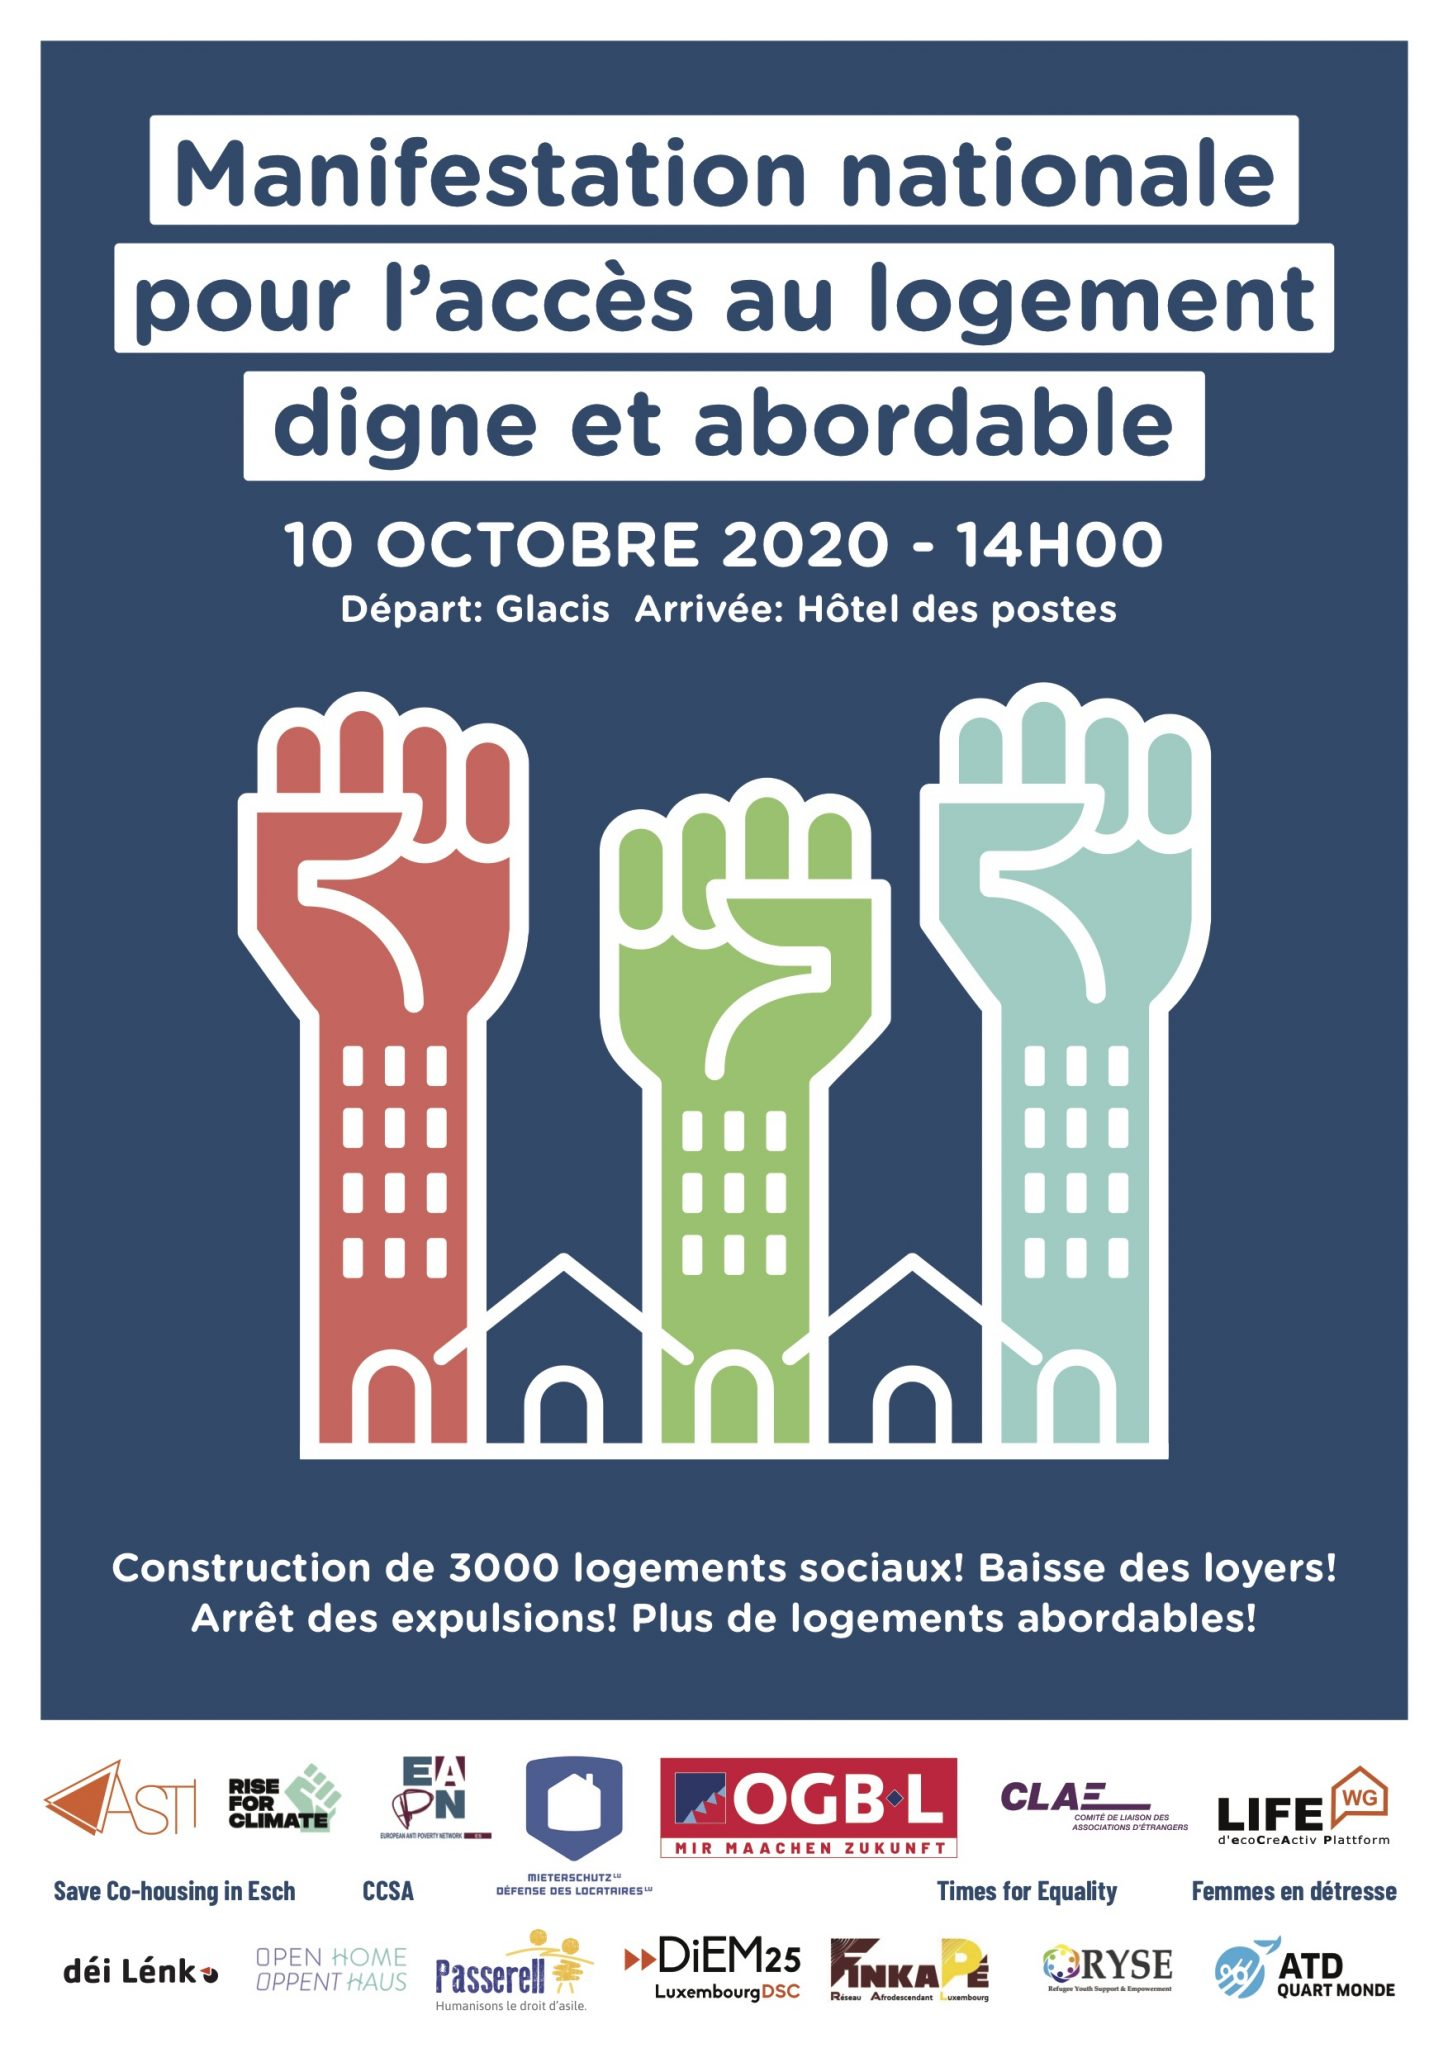 Affiche manifestation nationale logement